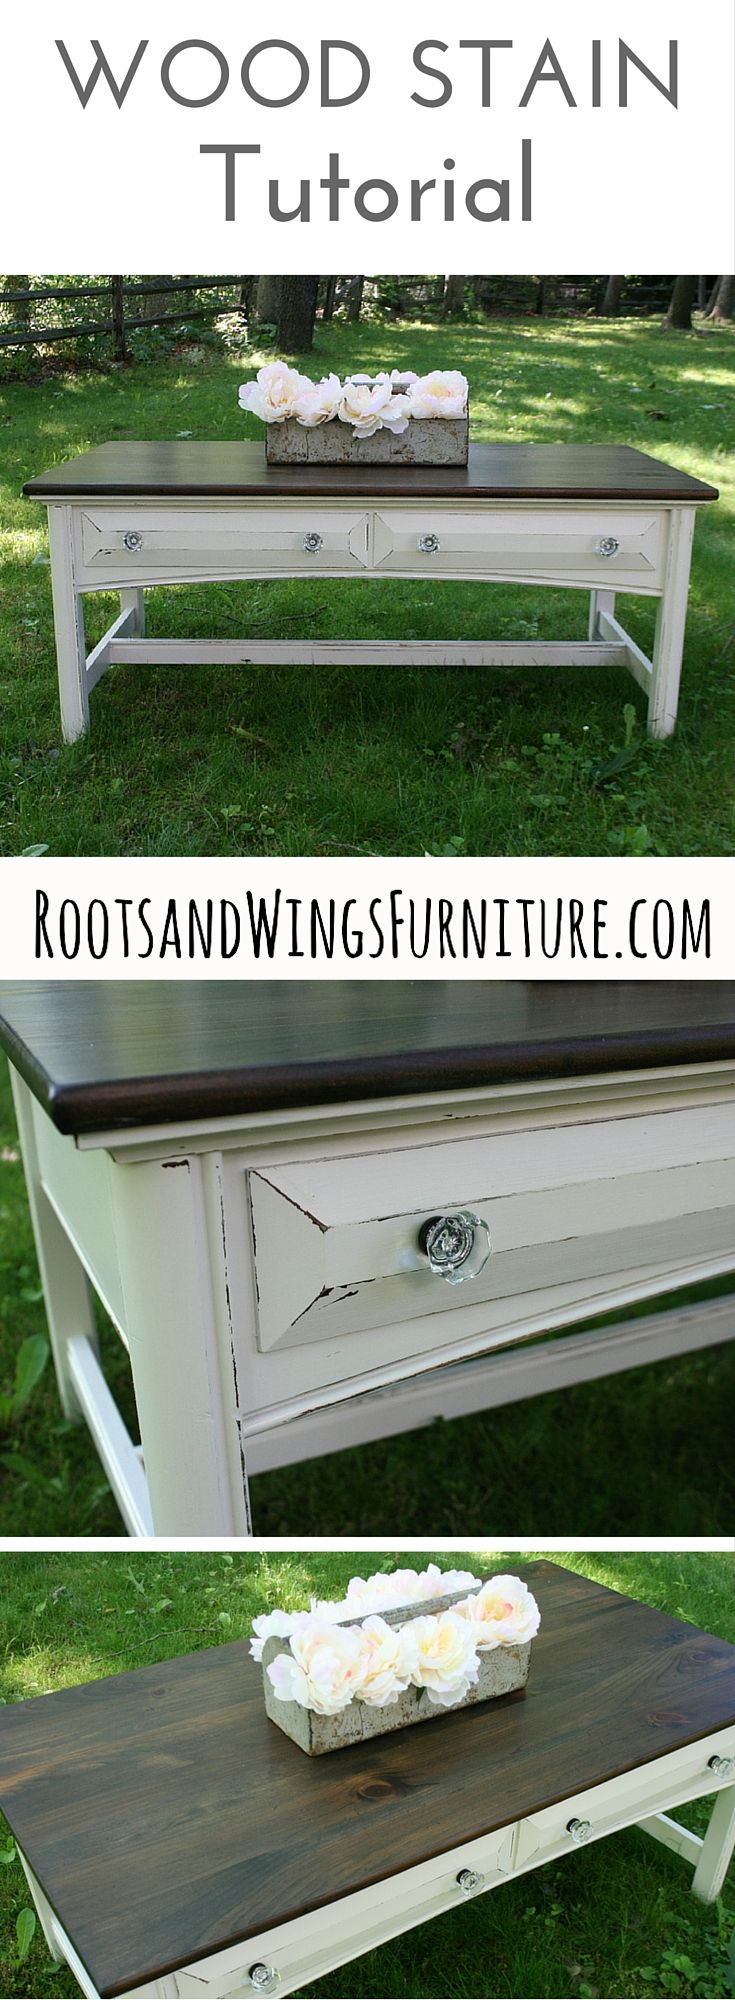 A video tutorial on how to refinish and stain wood.  By Jenni of Roots and Wings Furniture.